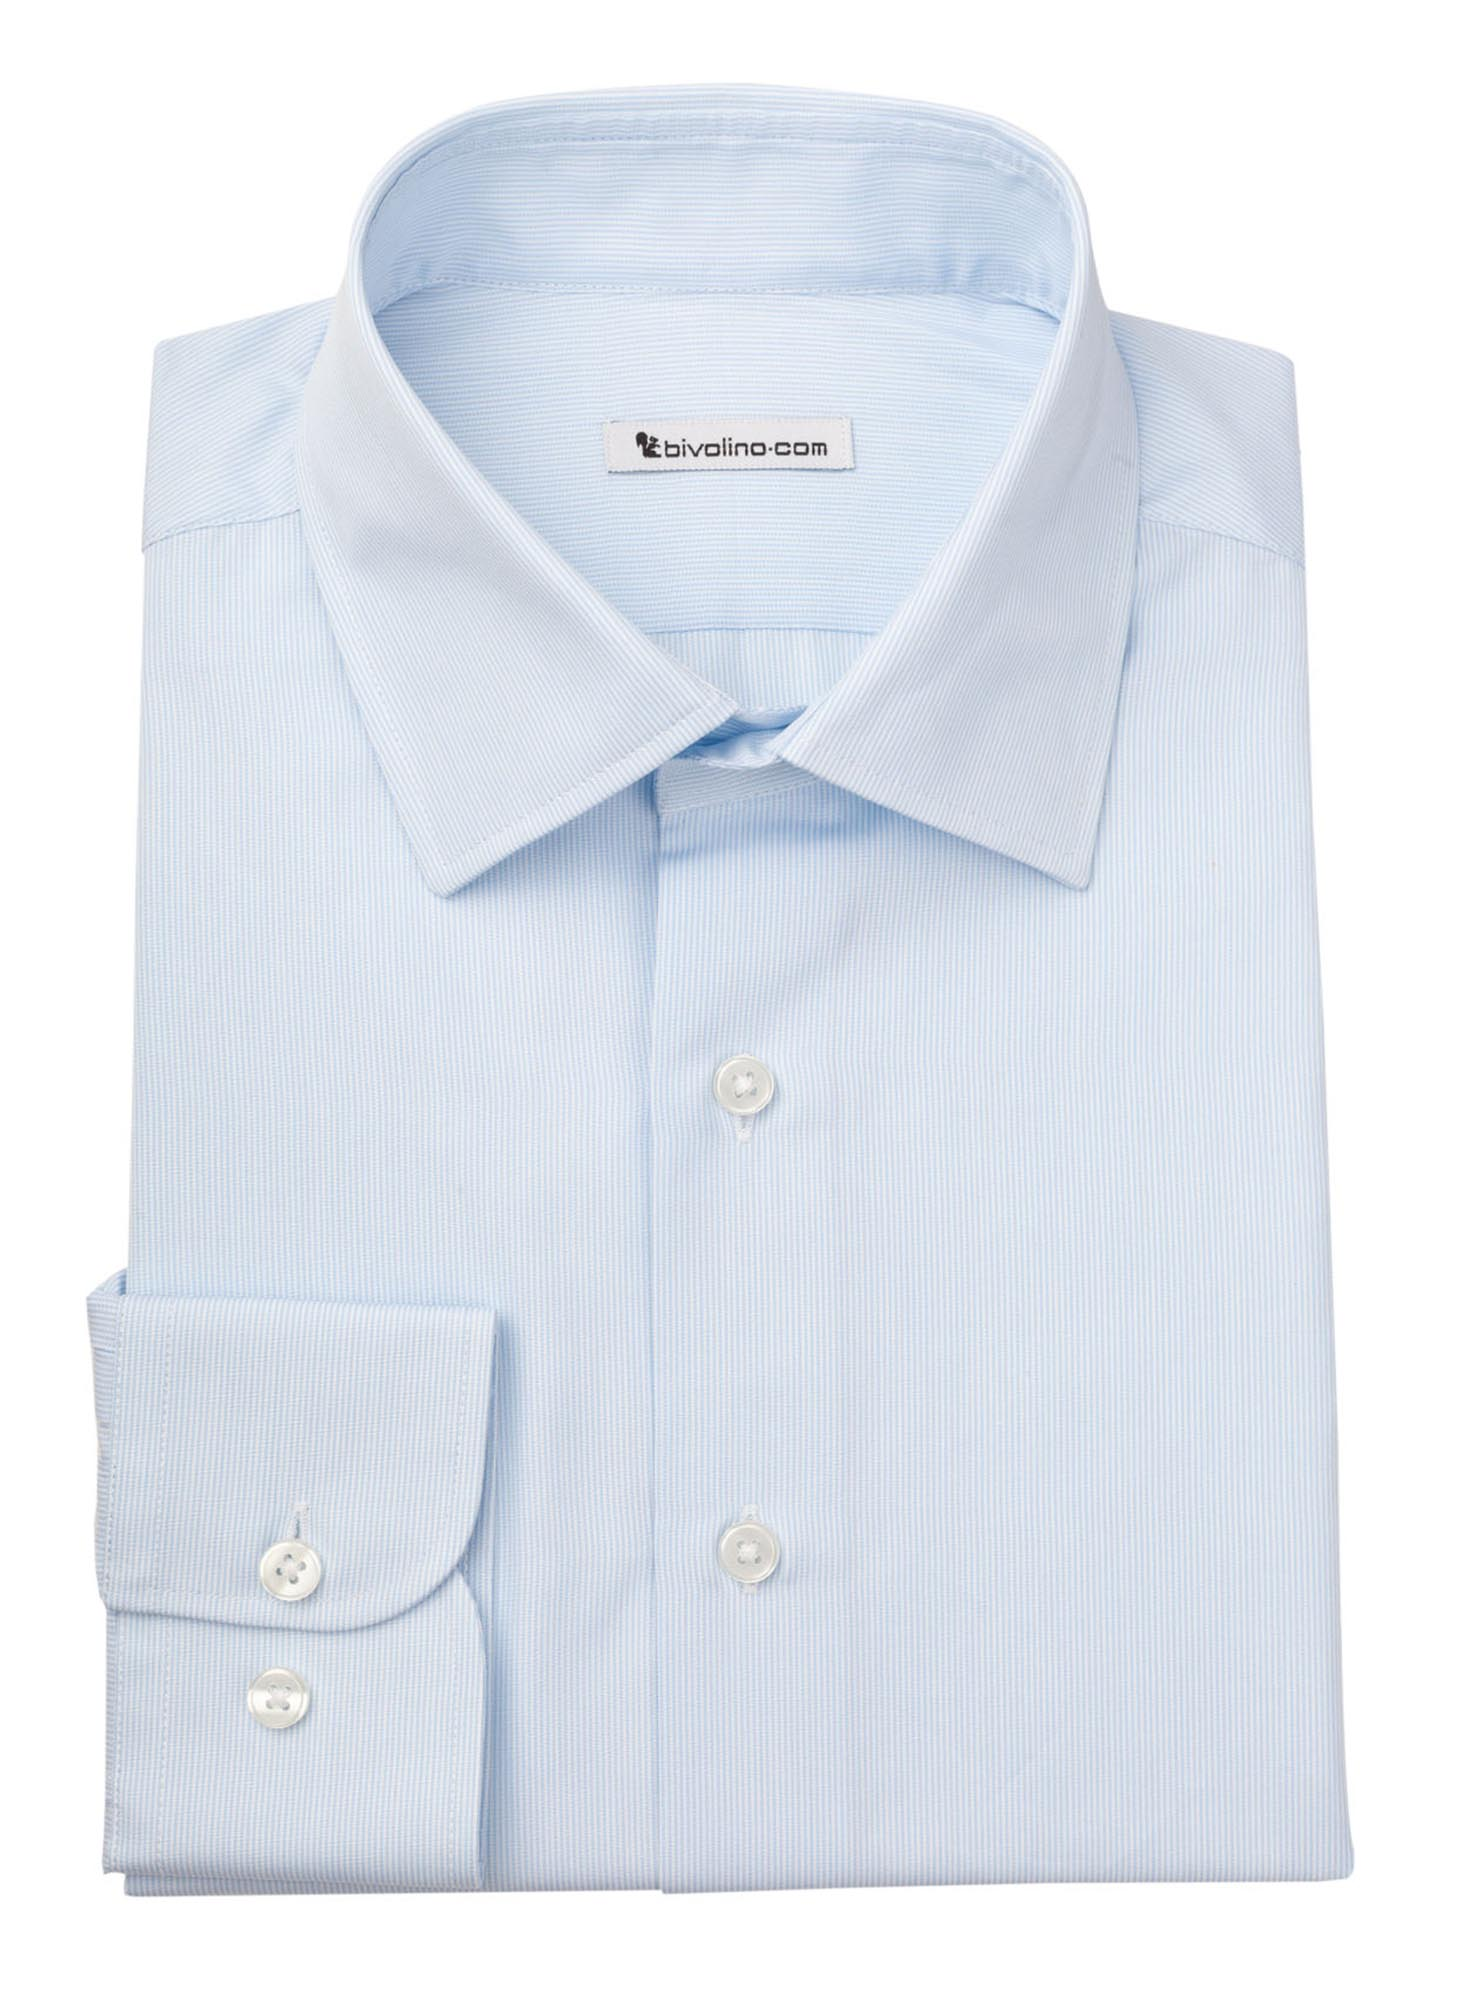 OSPEDALETTO - men's shirt cotton two-fold 2ply Egyptian blue - DOCRA 6